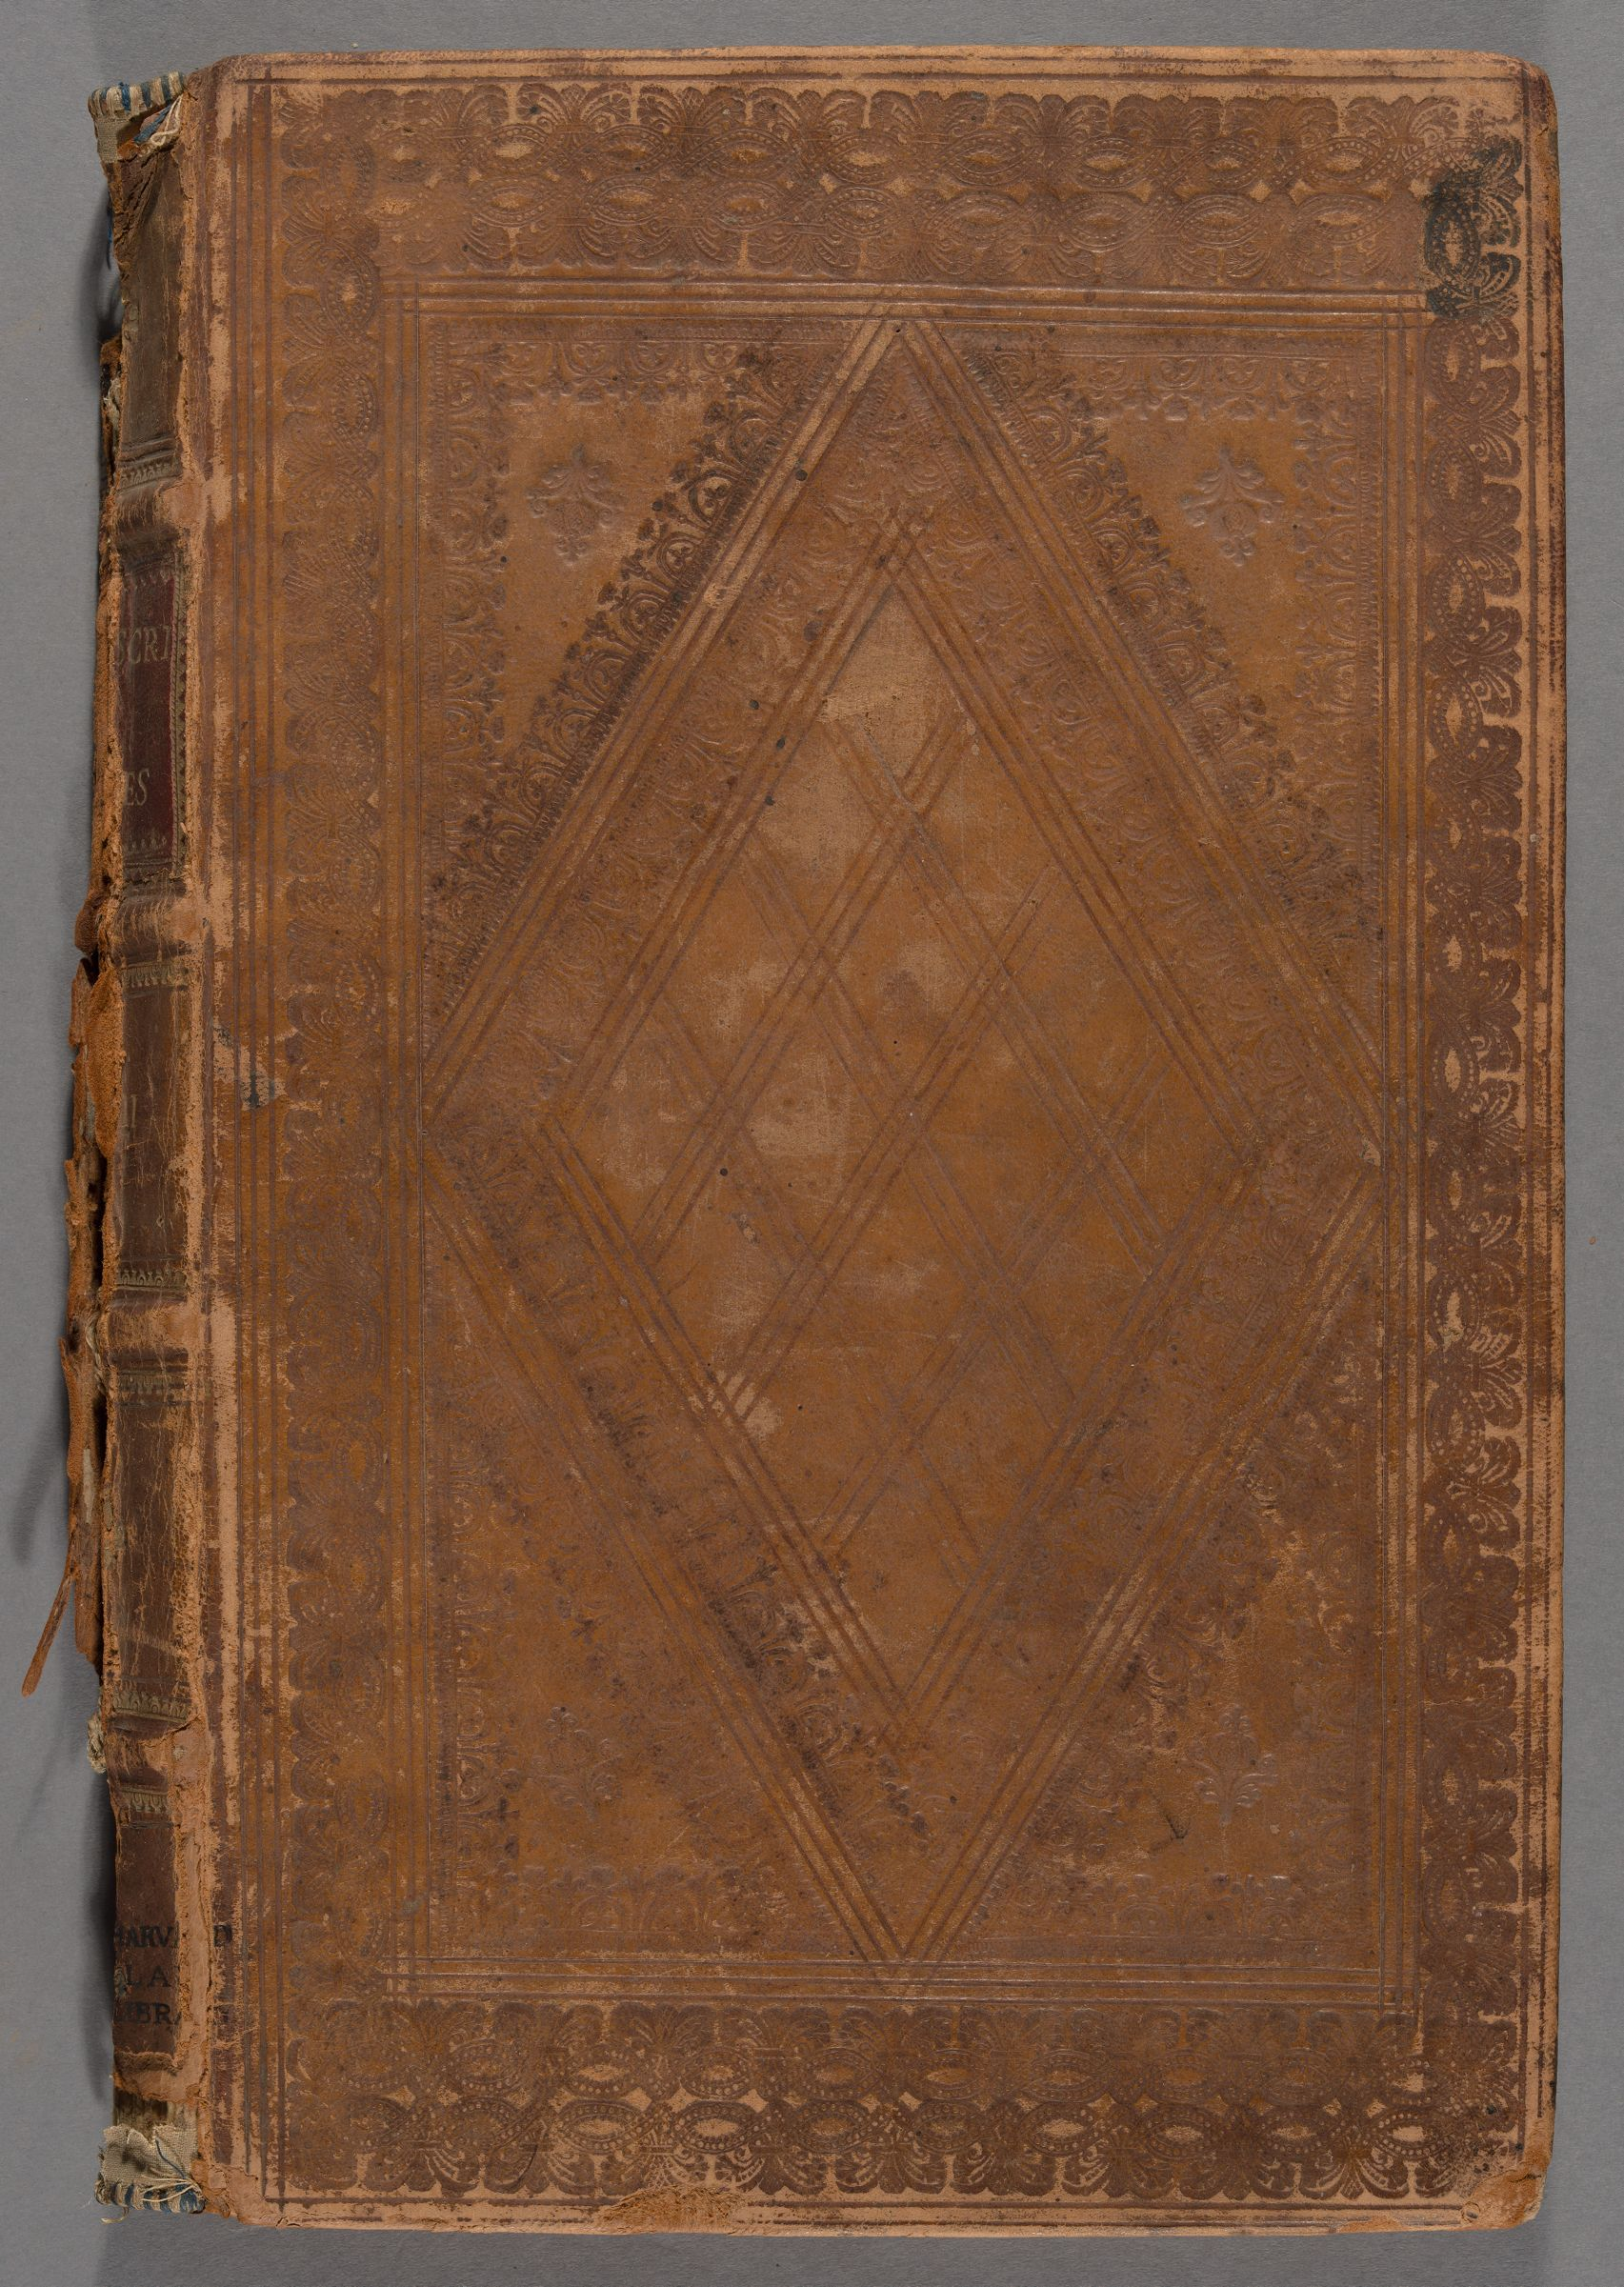 Notes of cases before colonial New Jersey courts, 1735-1755